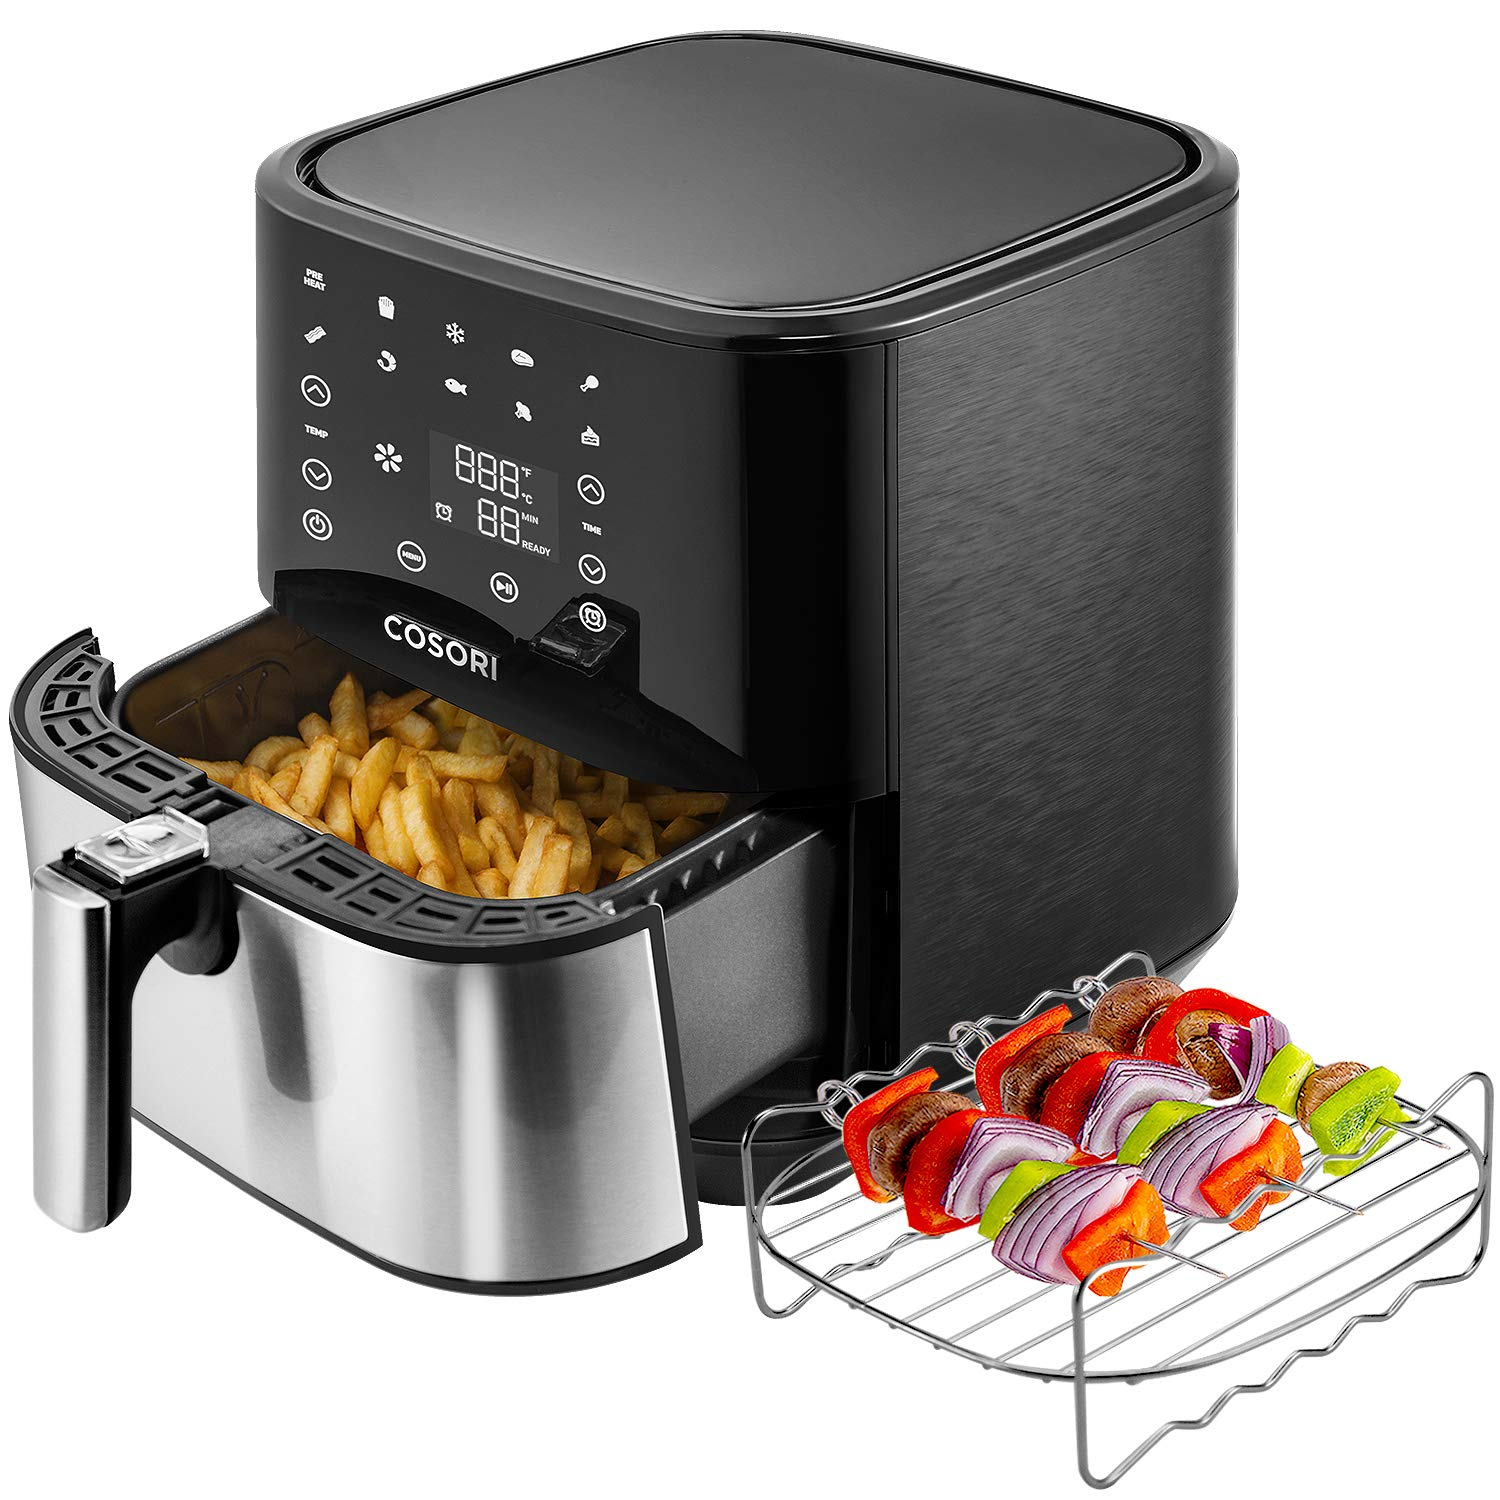 COSORI Air Fryer 100 Recipes & Rack,5.8Qt Stainless Steel Air Fryers XL Oven Oilless Cooker Pot,Preheat & Alarm Reminder,LED Digital Touchscreen,Nonstick Basket,ETL/UL Certified,2-Year Warranty,1700W